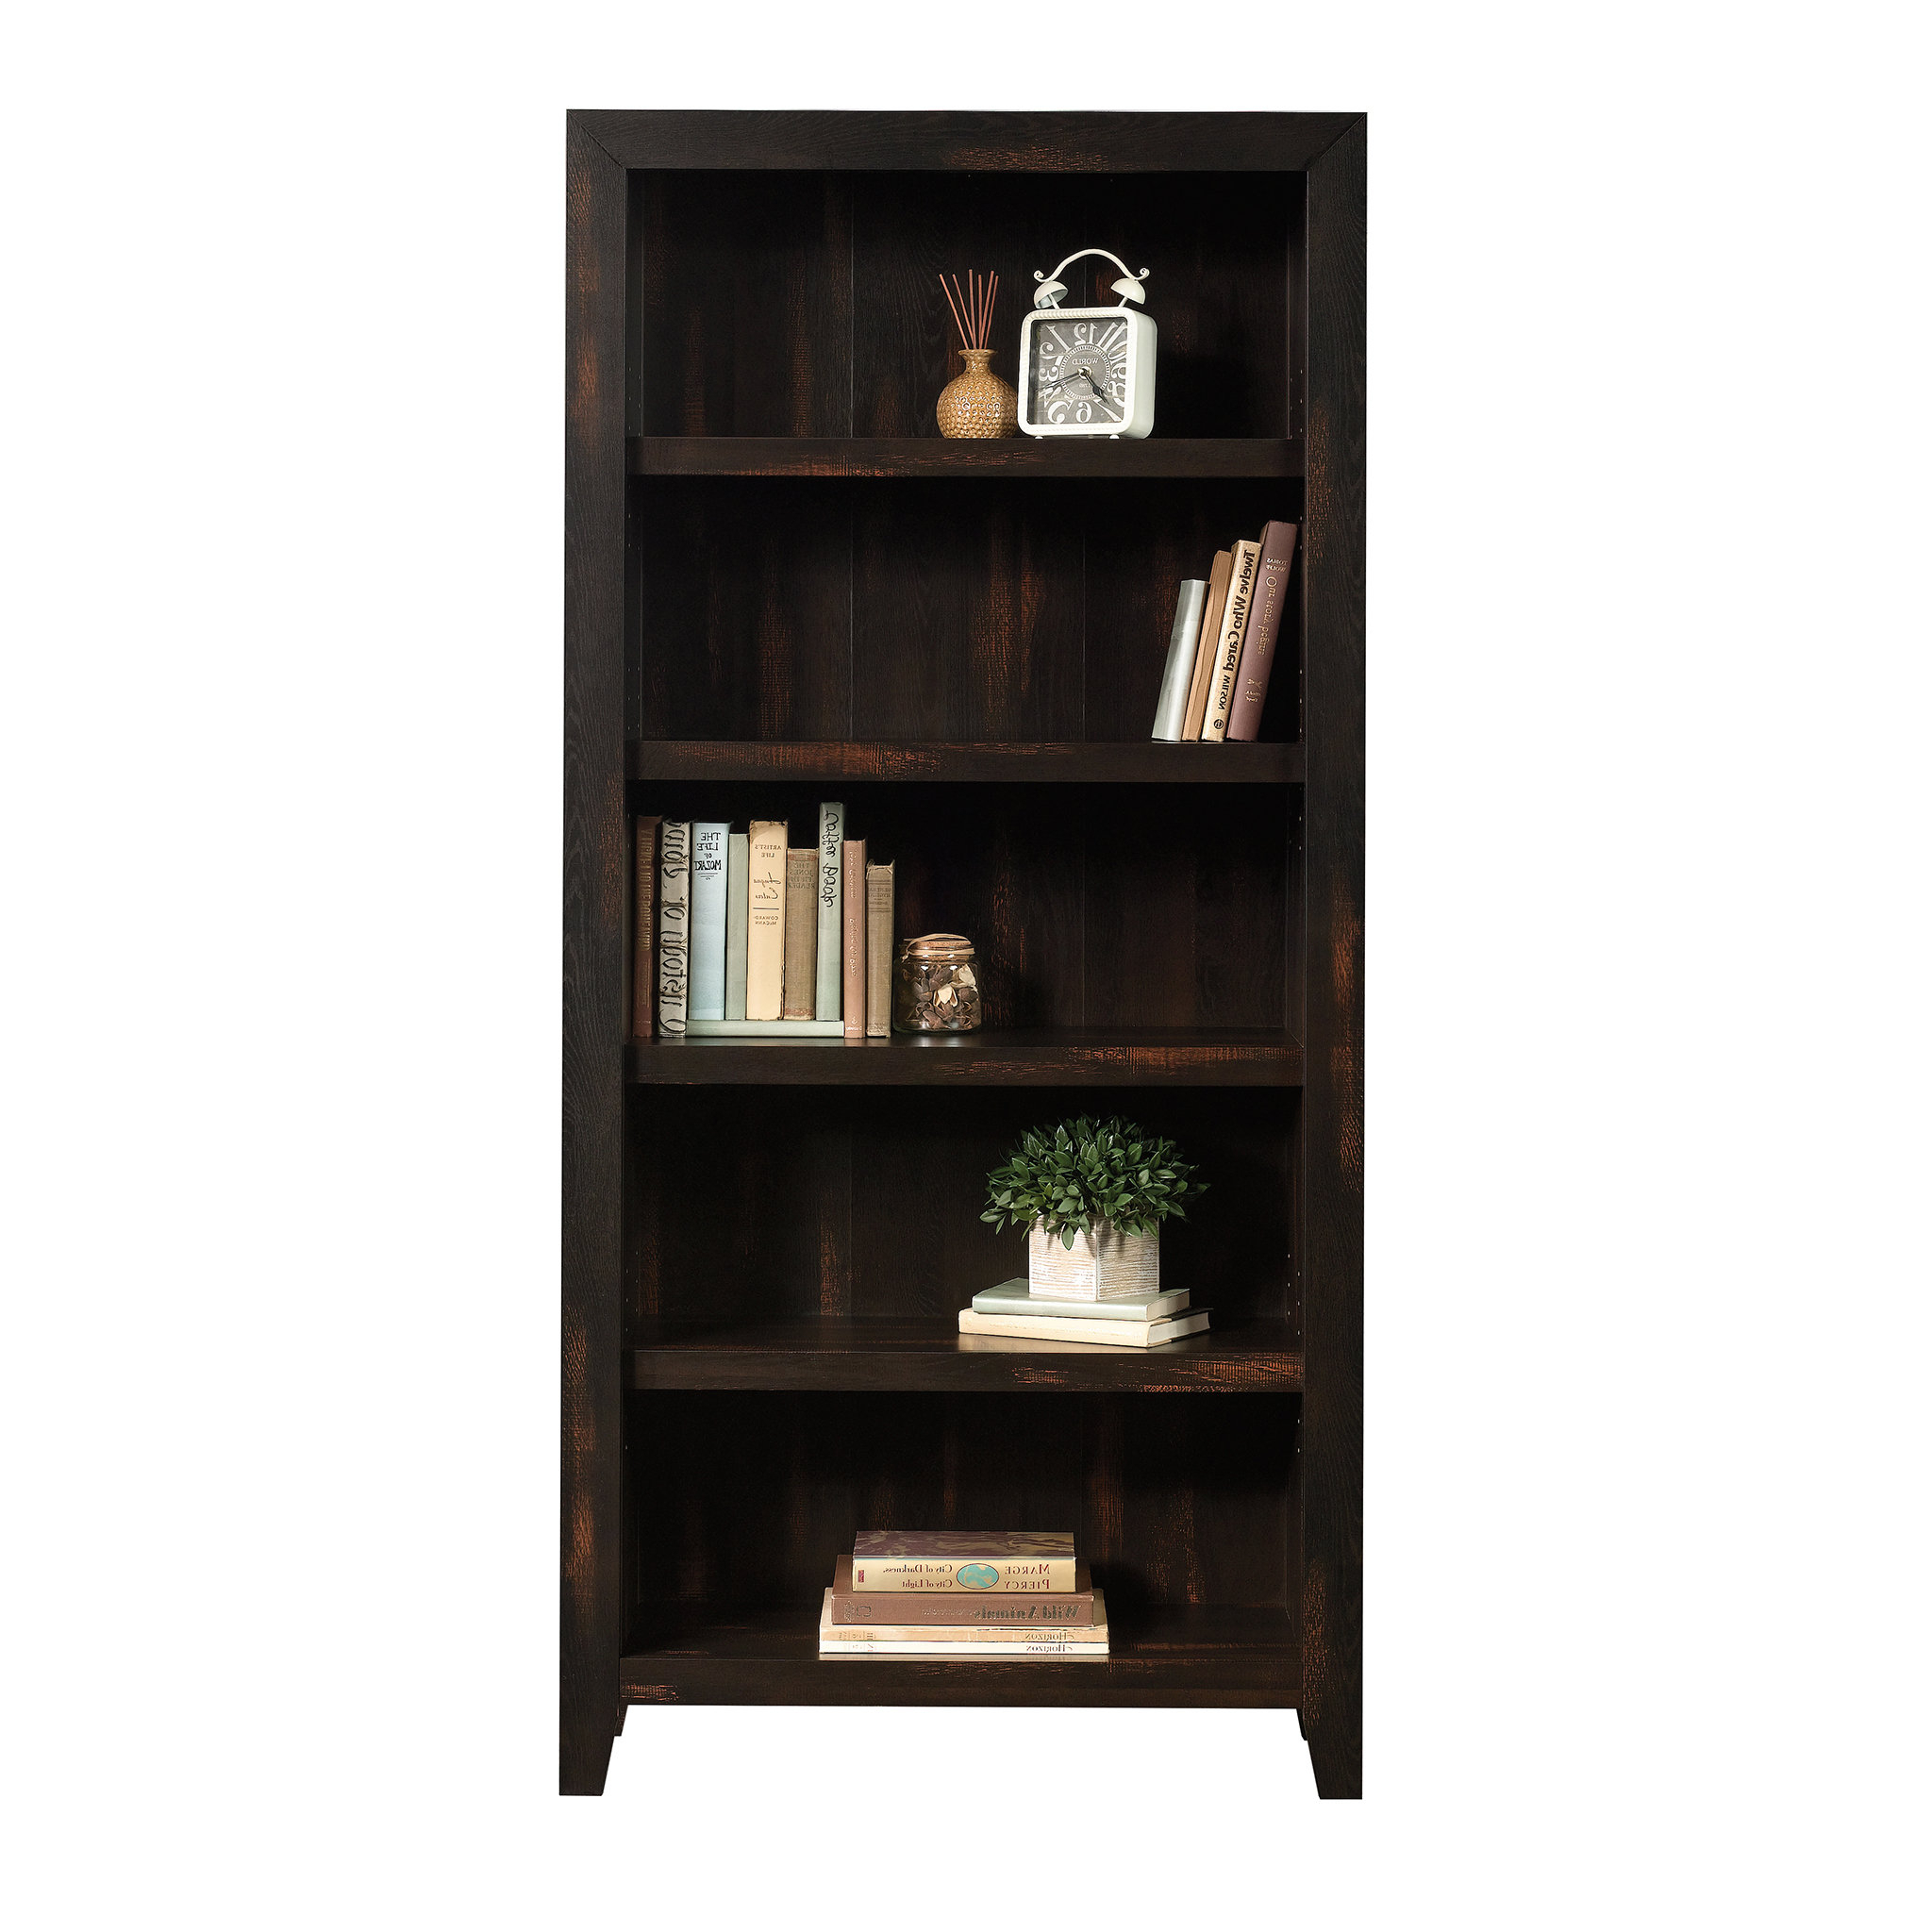 Orford Standard Bookcases For Most Up To Date Three Posts Orford Standard Bookcase (View 5 of 20)